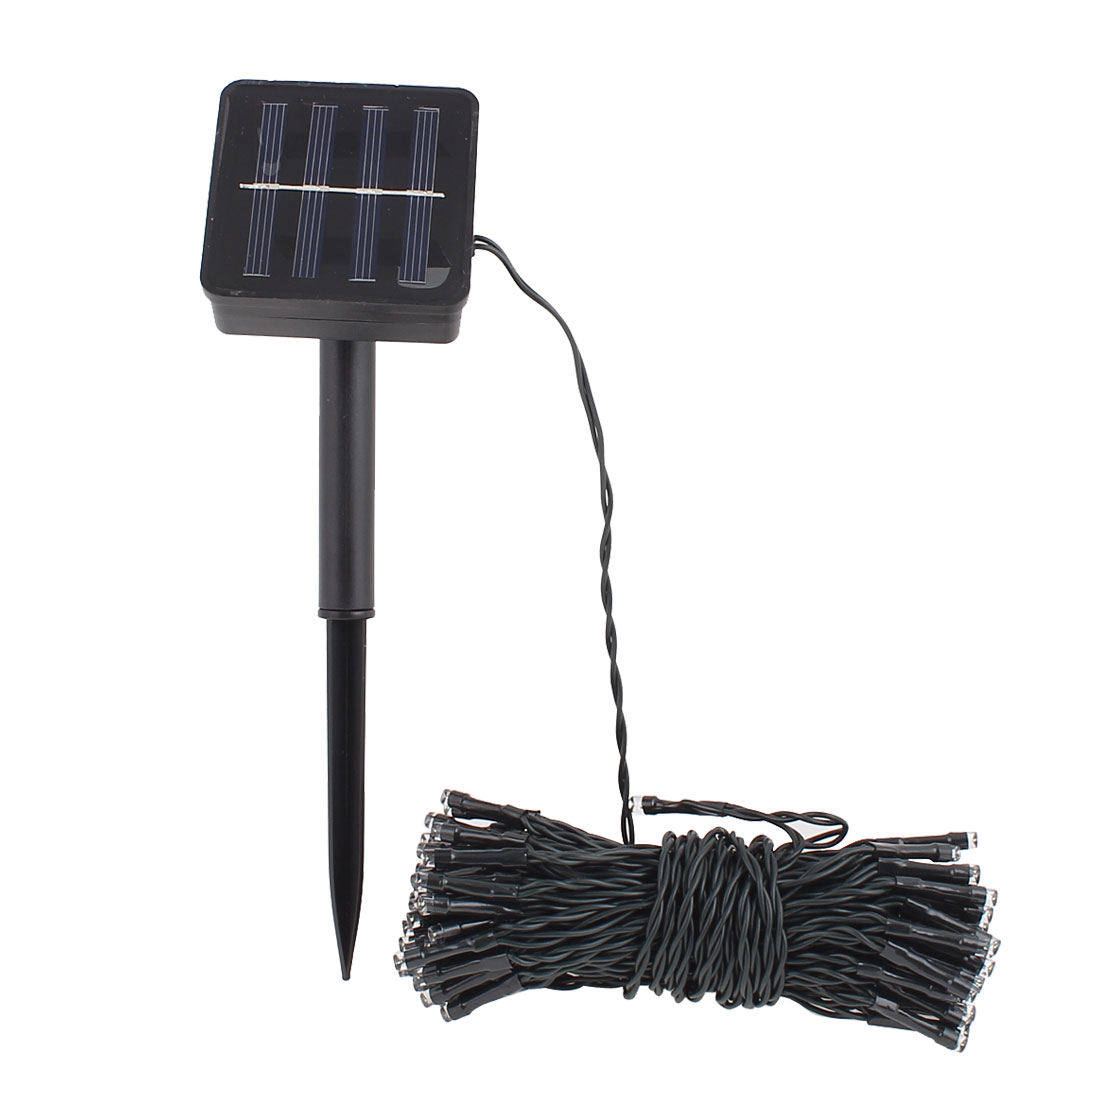 100 LED Warm White Solar Power String Light Outdoor Garden Party Home Decor Lamp 12 Meters